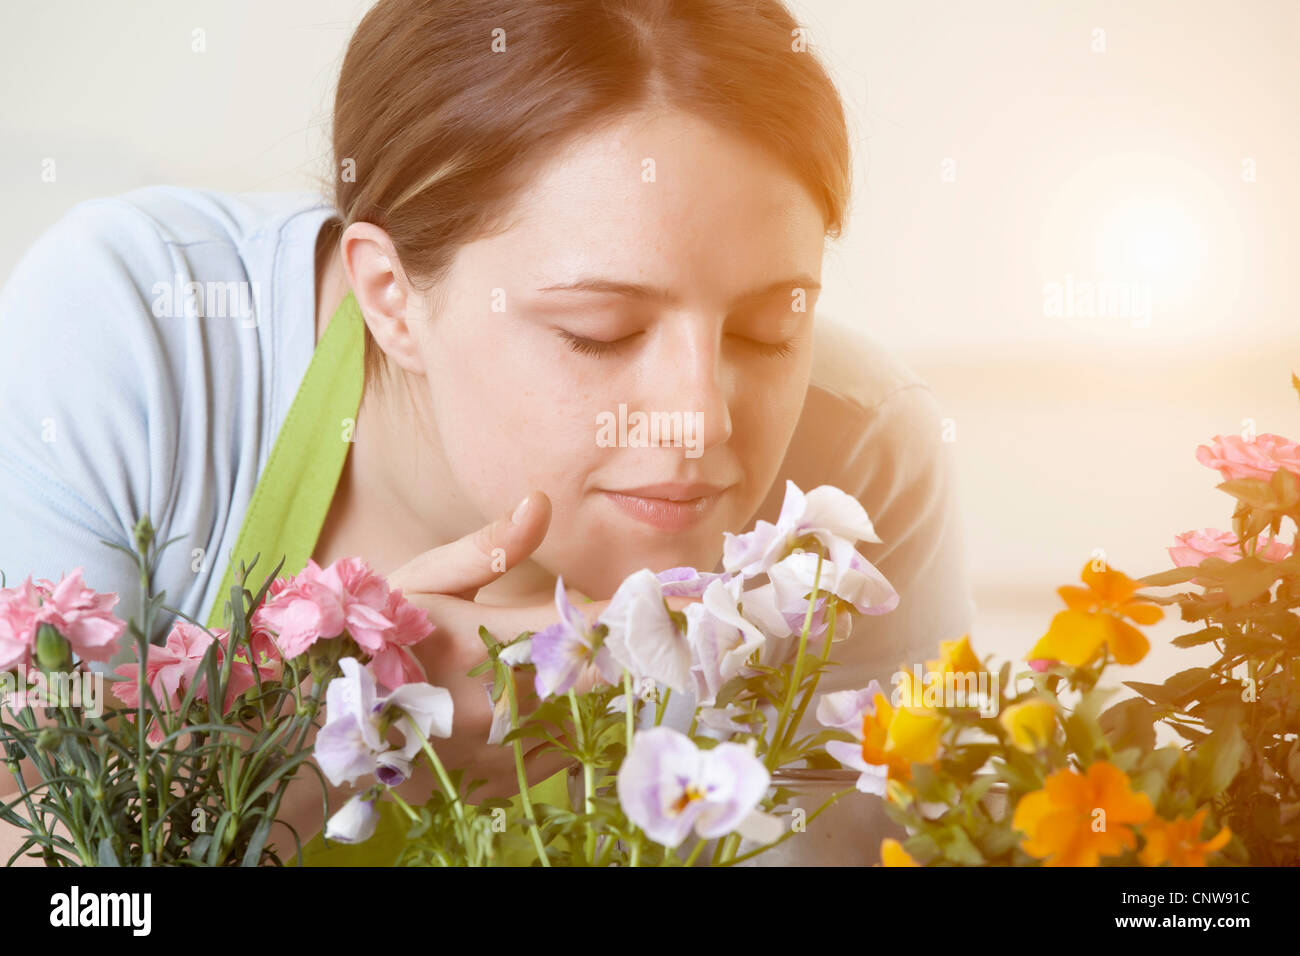 Woman smelling flowers plants indoors - Stock Image